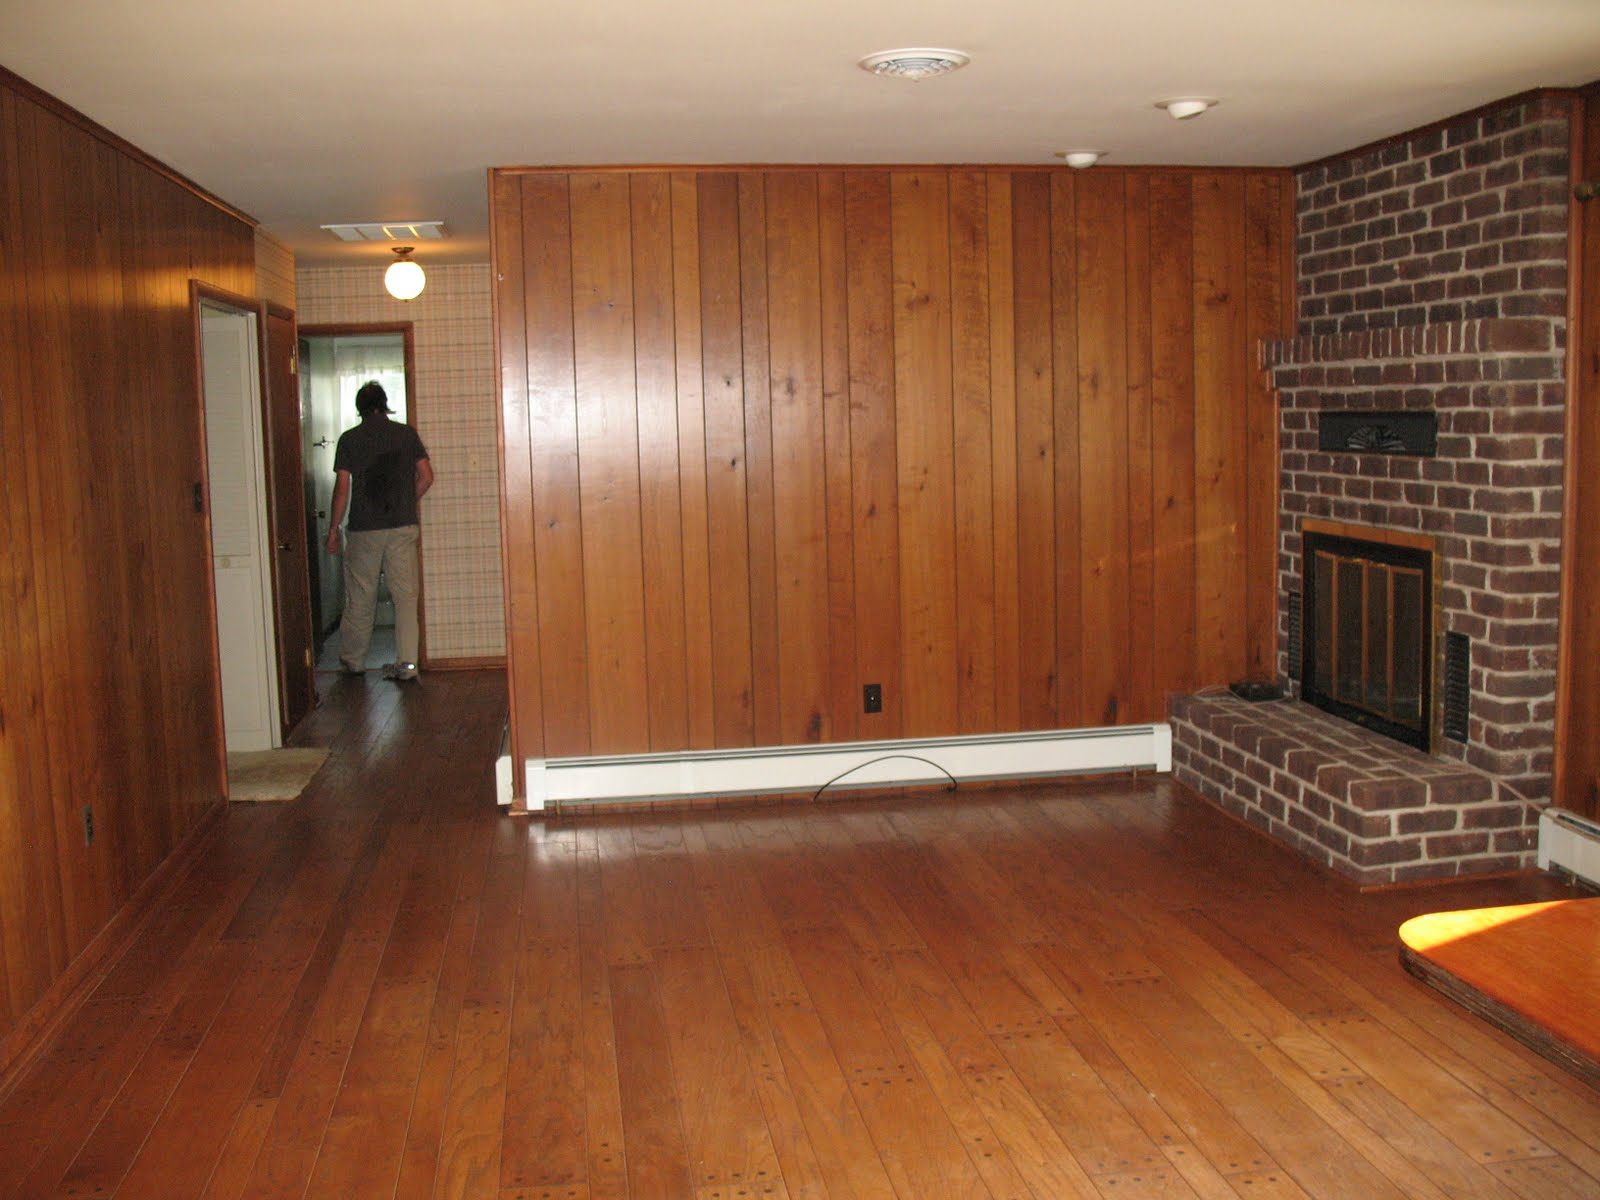 Lara and Bill: Painting wood paneling- The den project